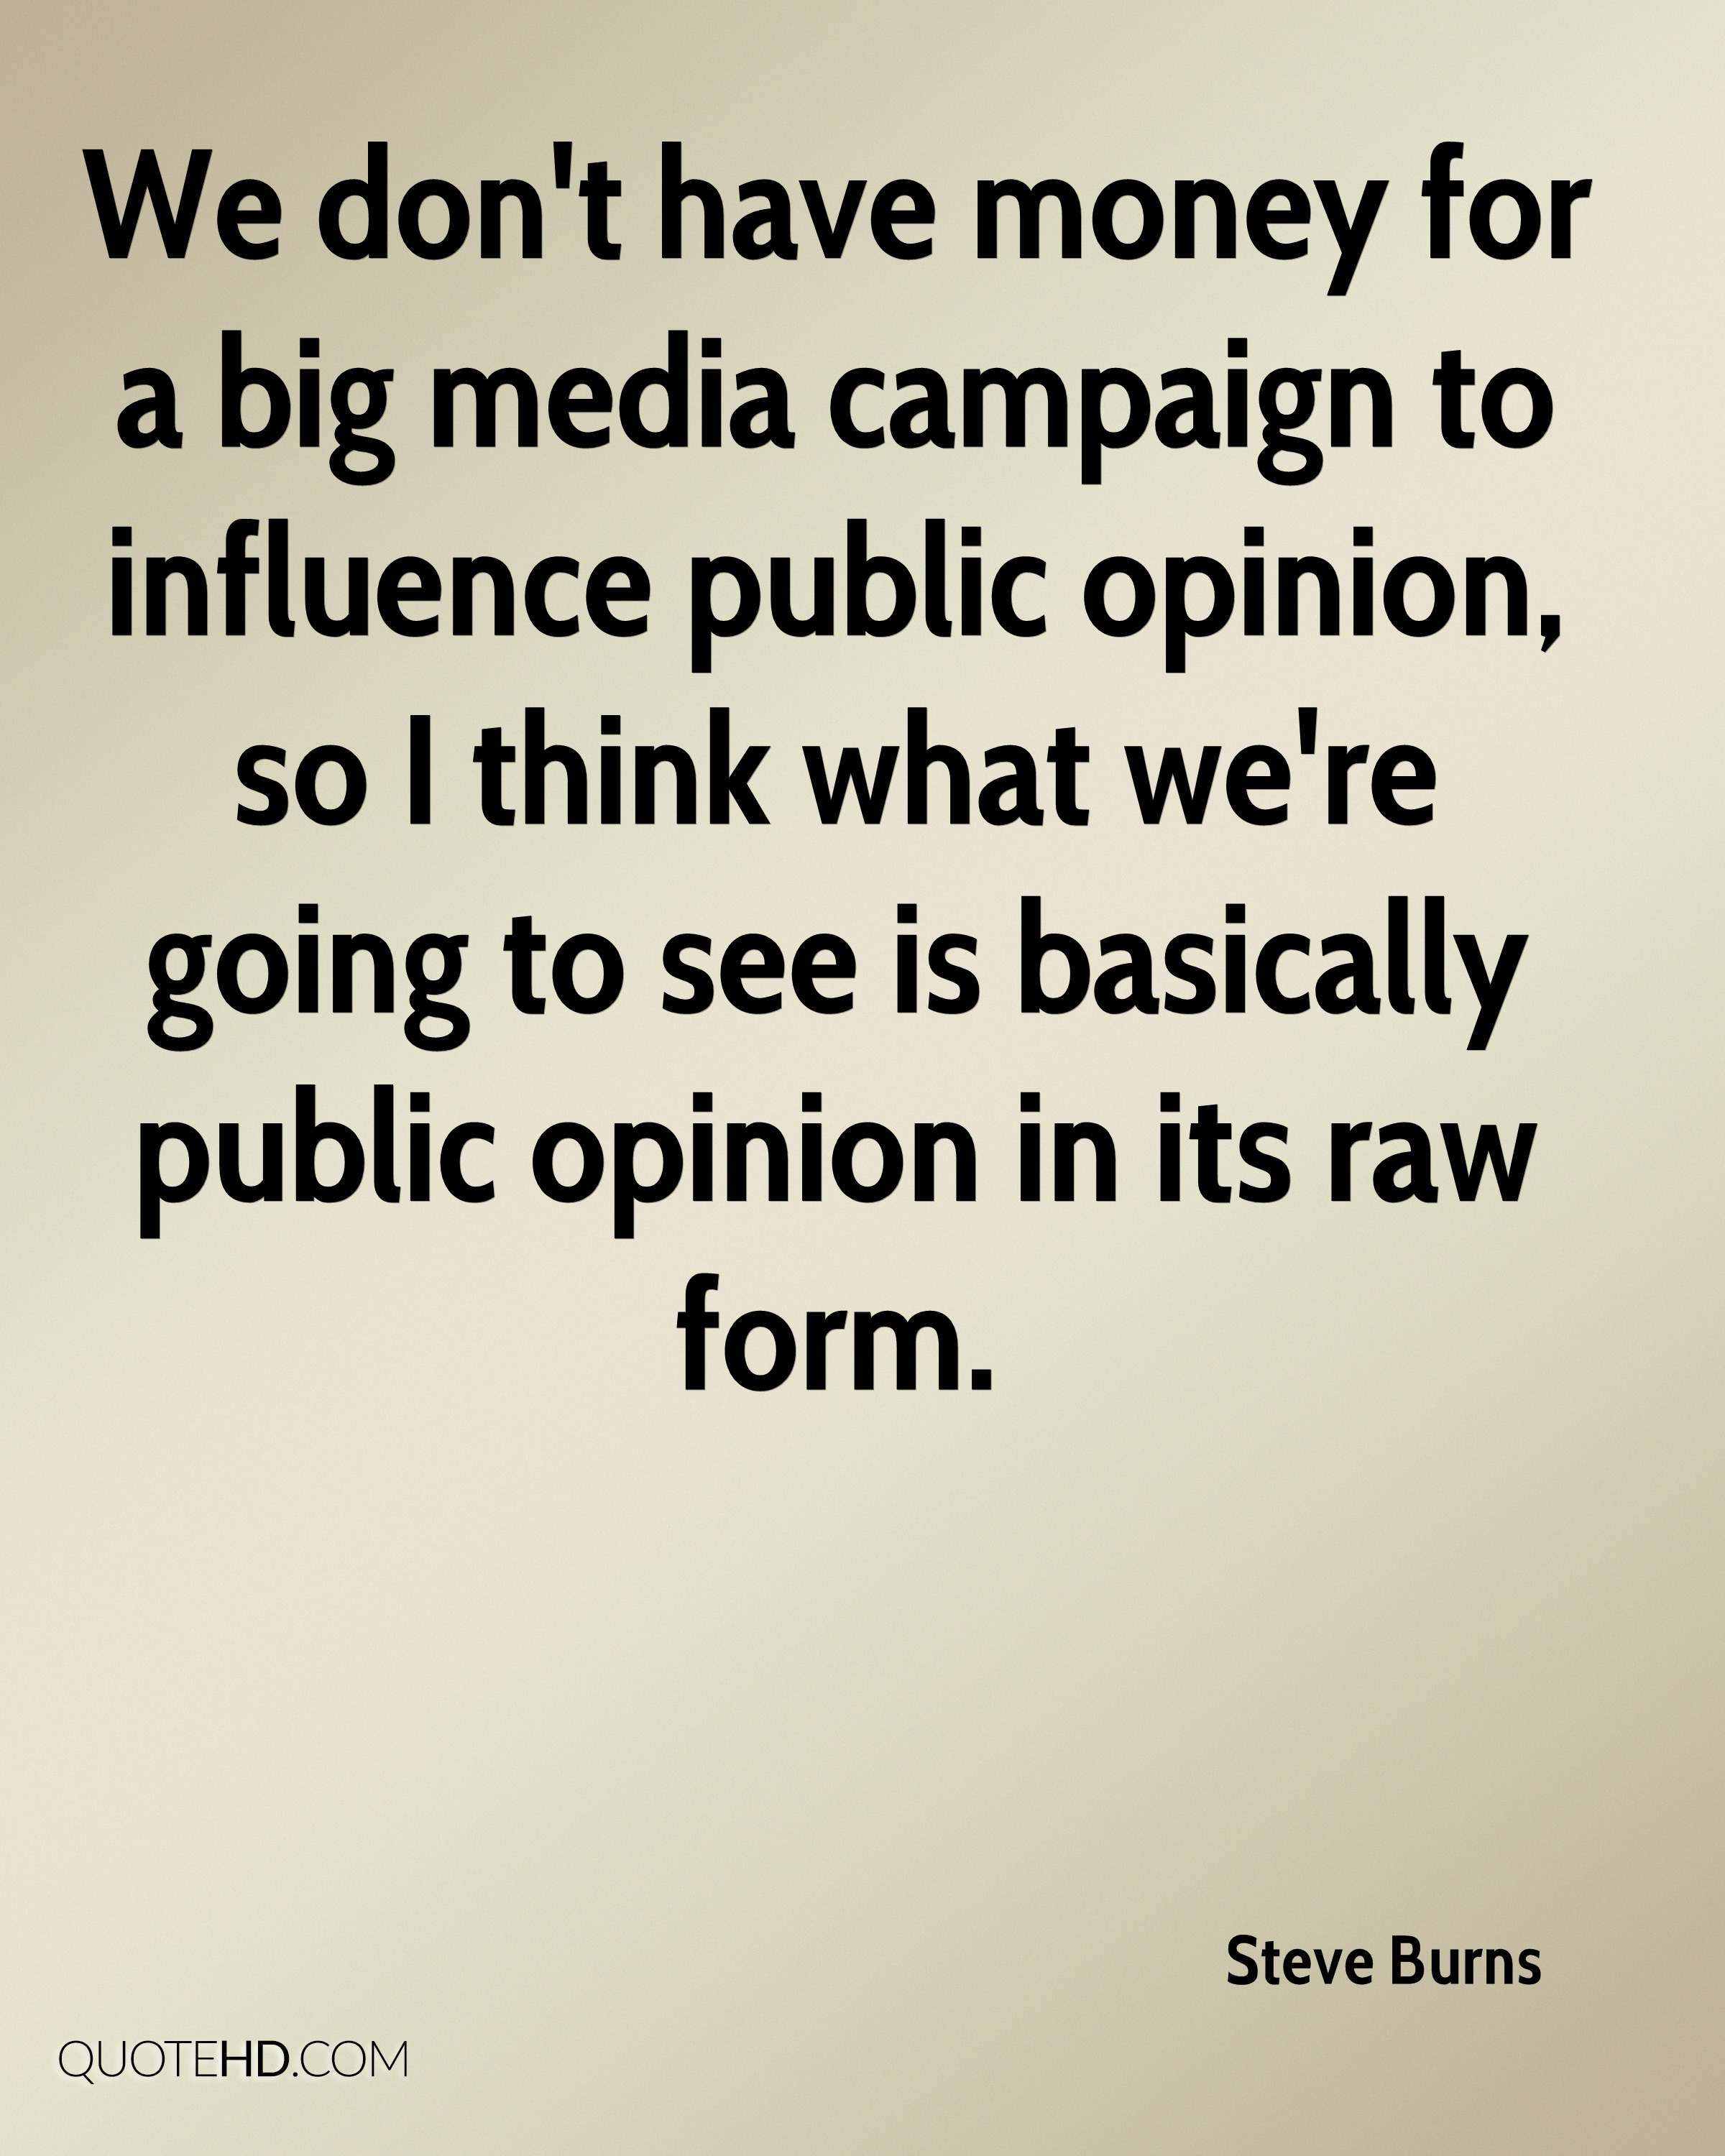 We don't have money for a big media campaign to influence public opinion, so I think what we're going to see is basically public opinion in its raw form.